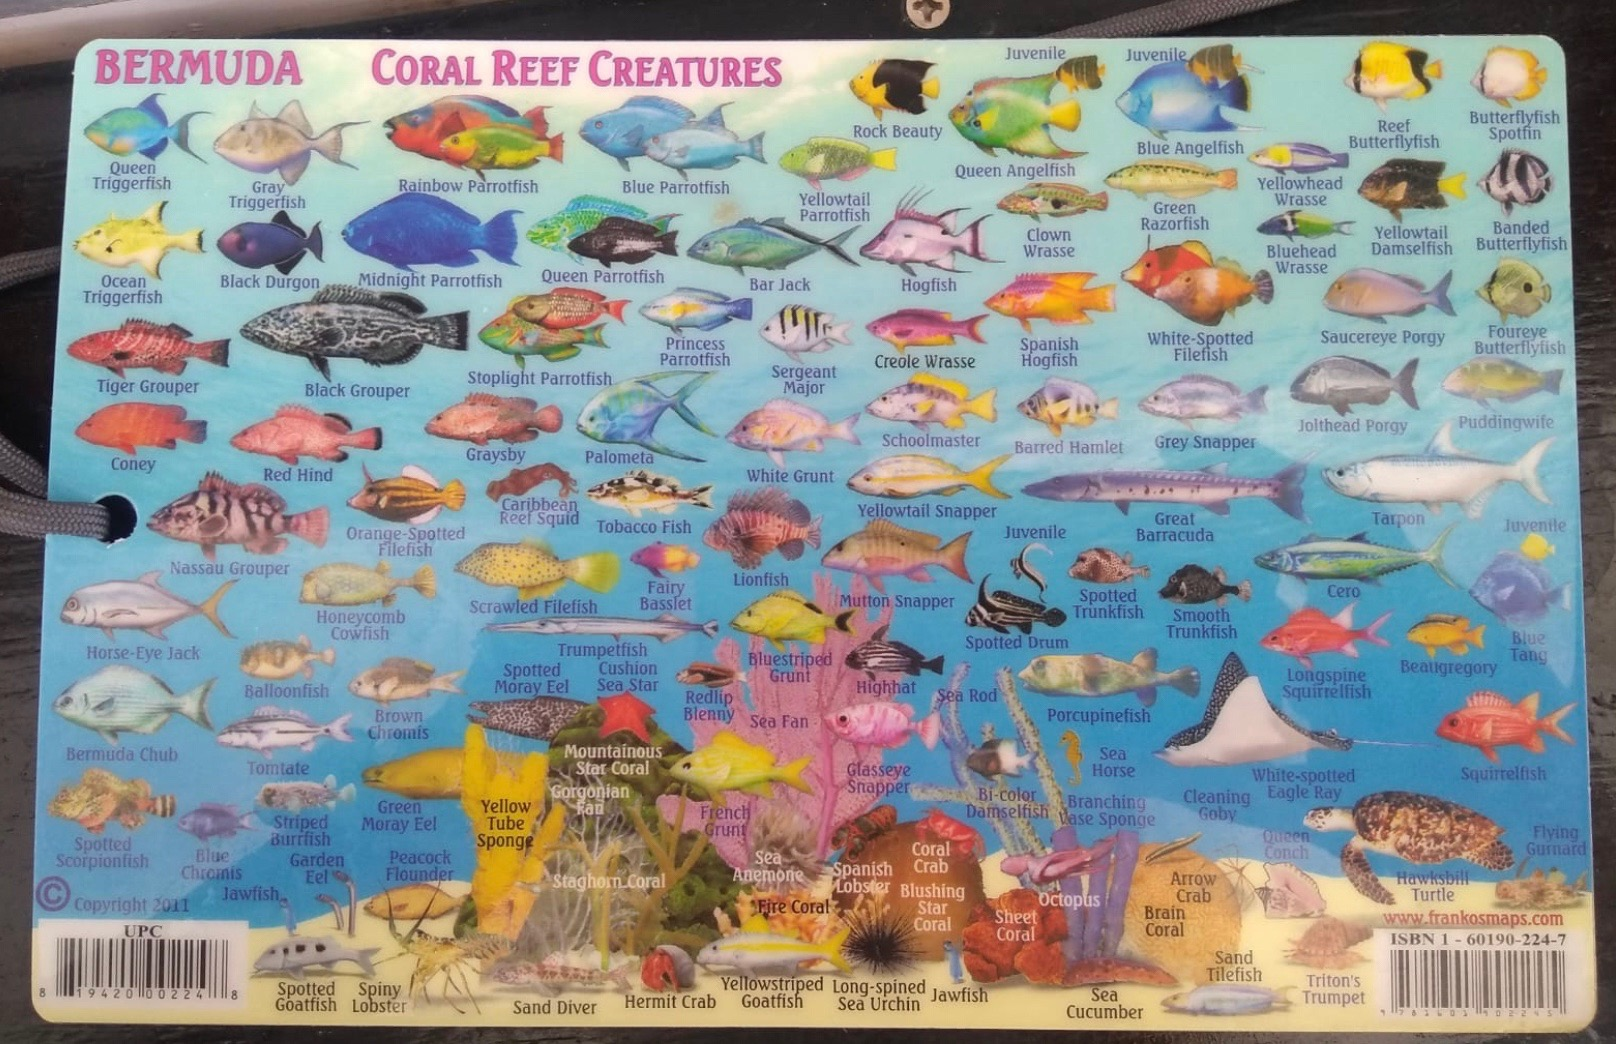 As soon as I was back on the catamaran, I looked up the names of all the fish and corals I could remember on the captain's fish card.